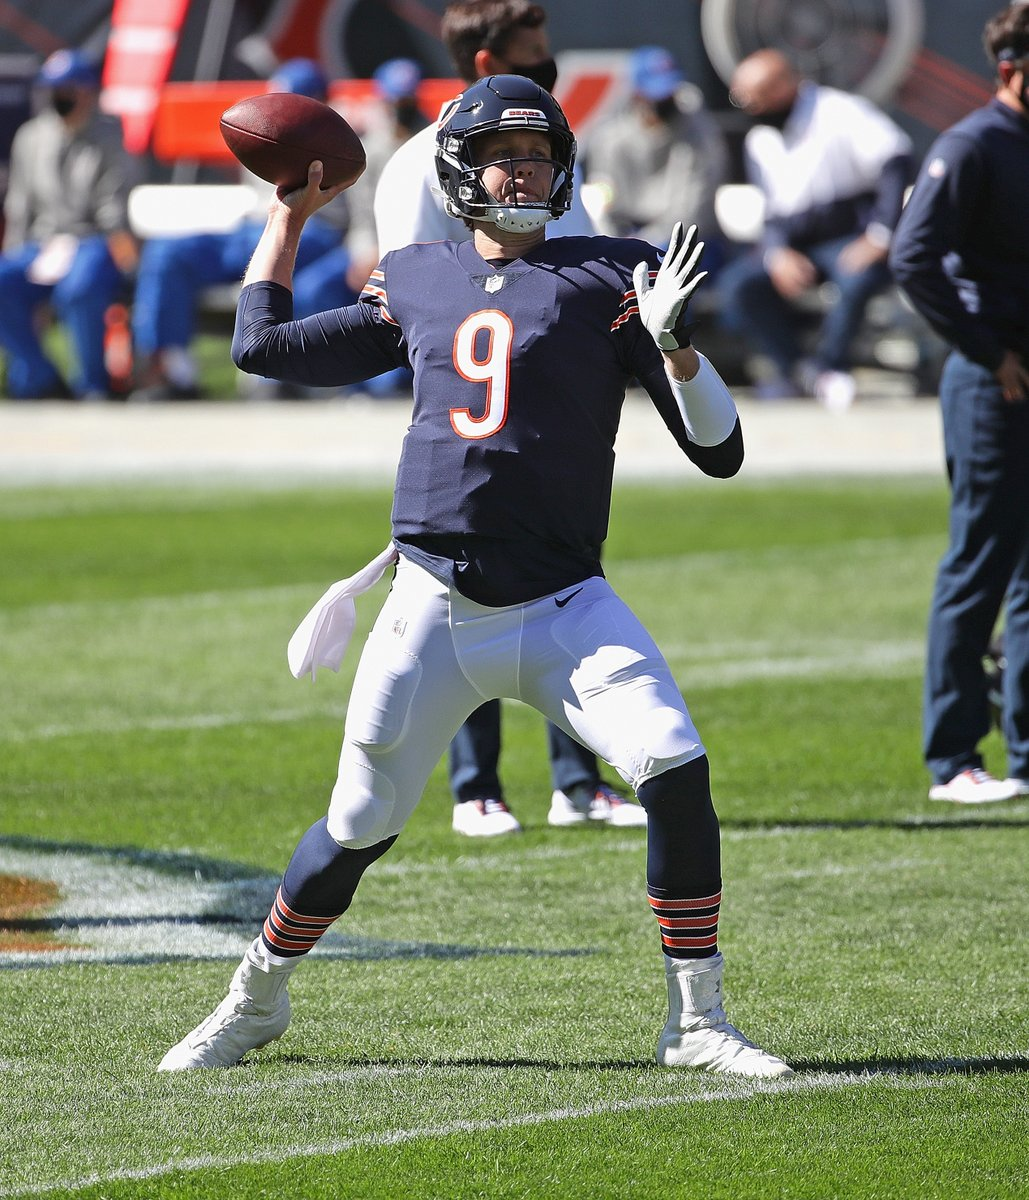 Bleacher Report On Twitter Foles Had 3 Tds In The 4q To Lead The Bears In An Epic Comeback Win Bears Have Their Qb1